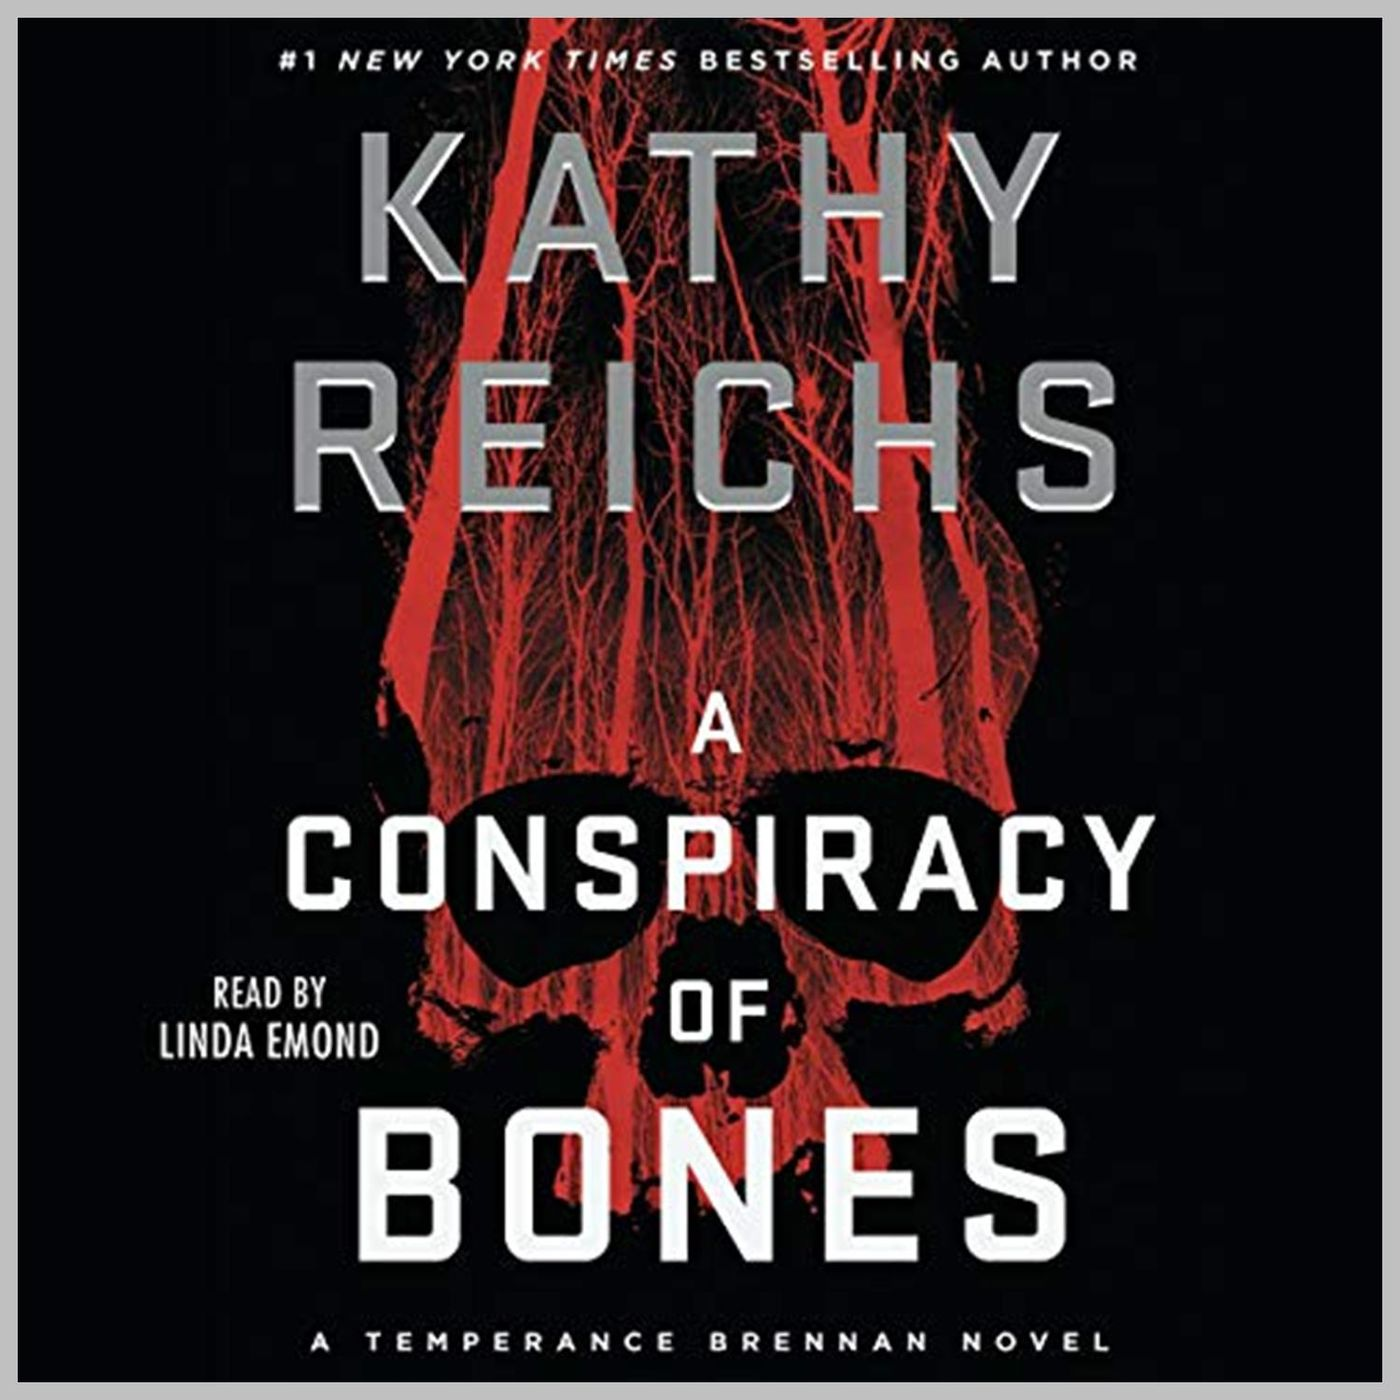 KATHY REICHS - A Conspiracy of Bones